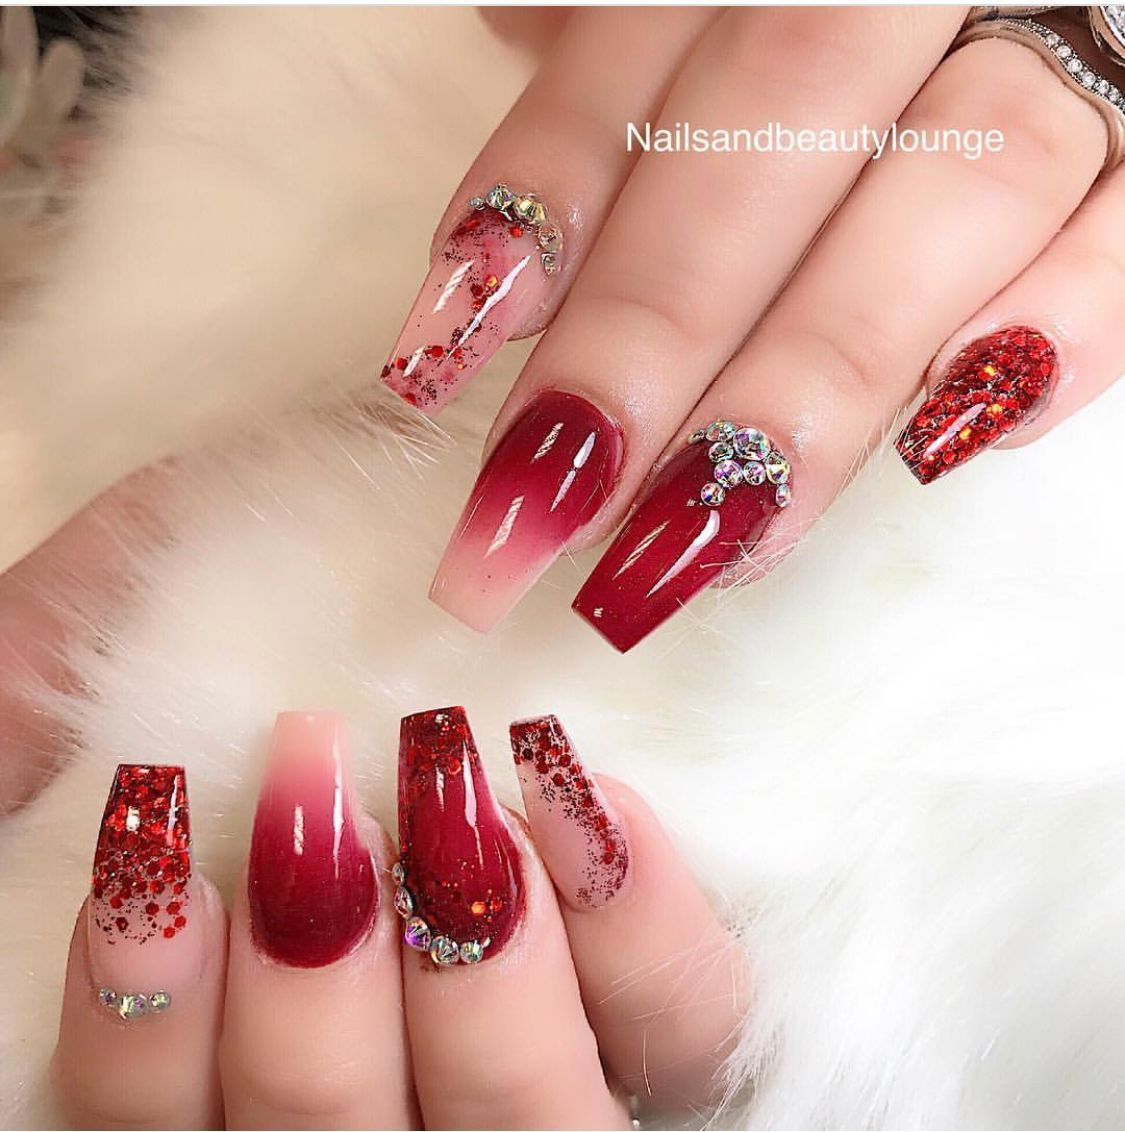 Trending Bridal Nail Art Design Ideas Bridal Inspiration Indian Wedding Inspiration In 2020 Red Ombre Nails Luxury Nails Glamorous Nails